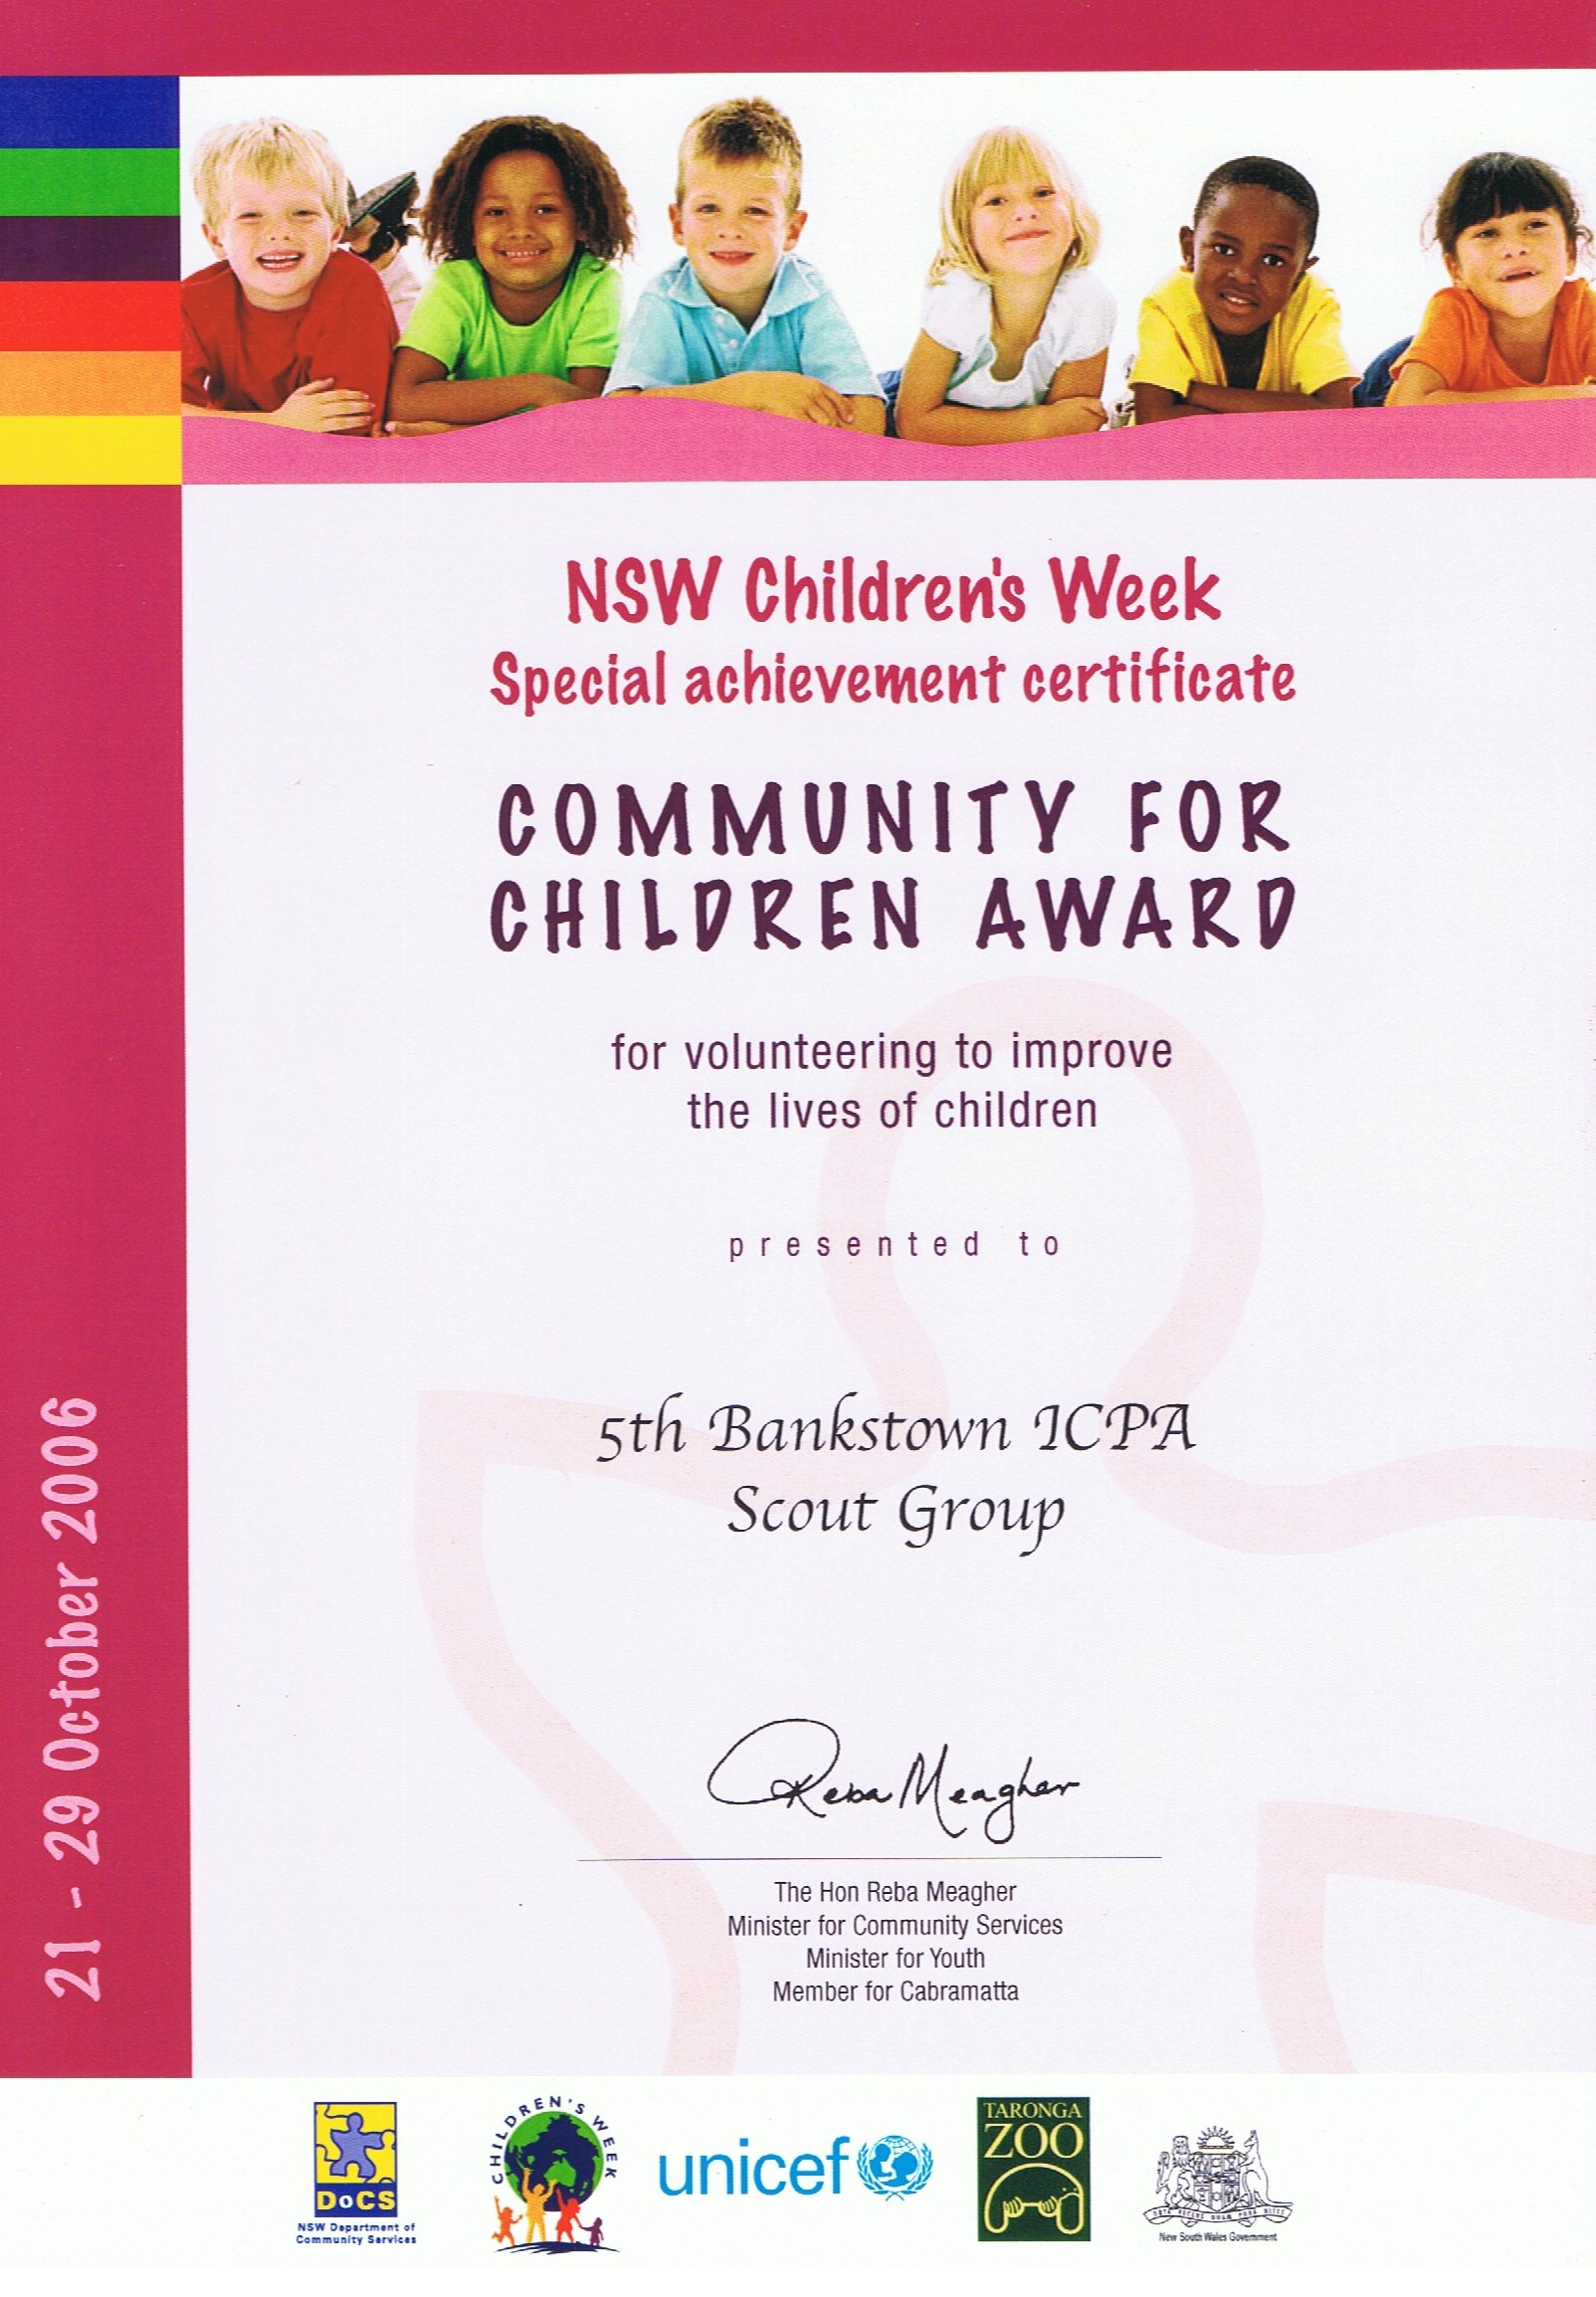 Community for Children Award NSW Children's Week - 2006